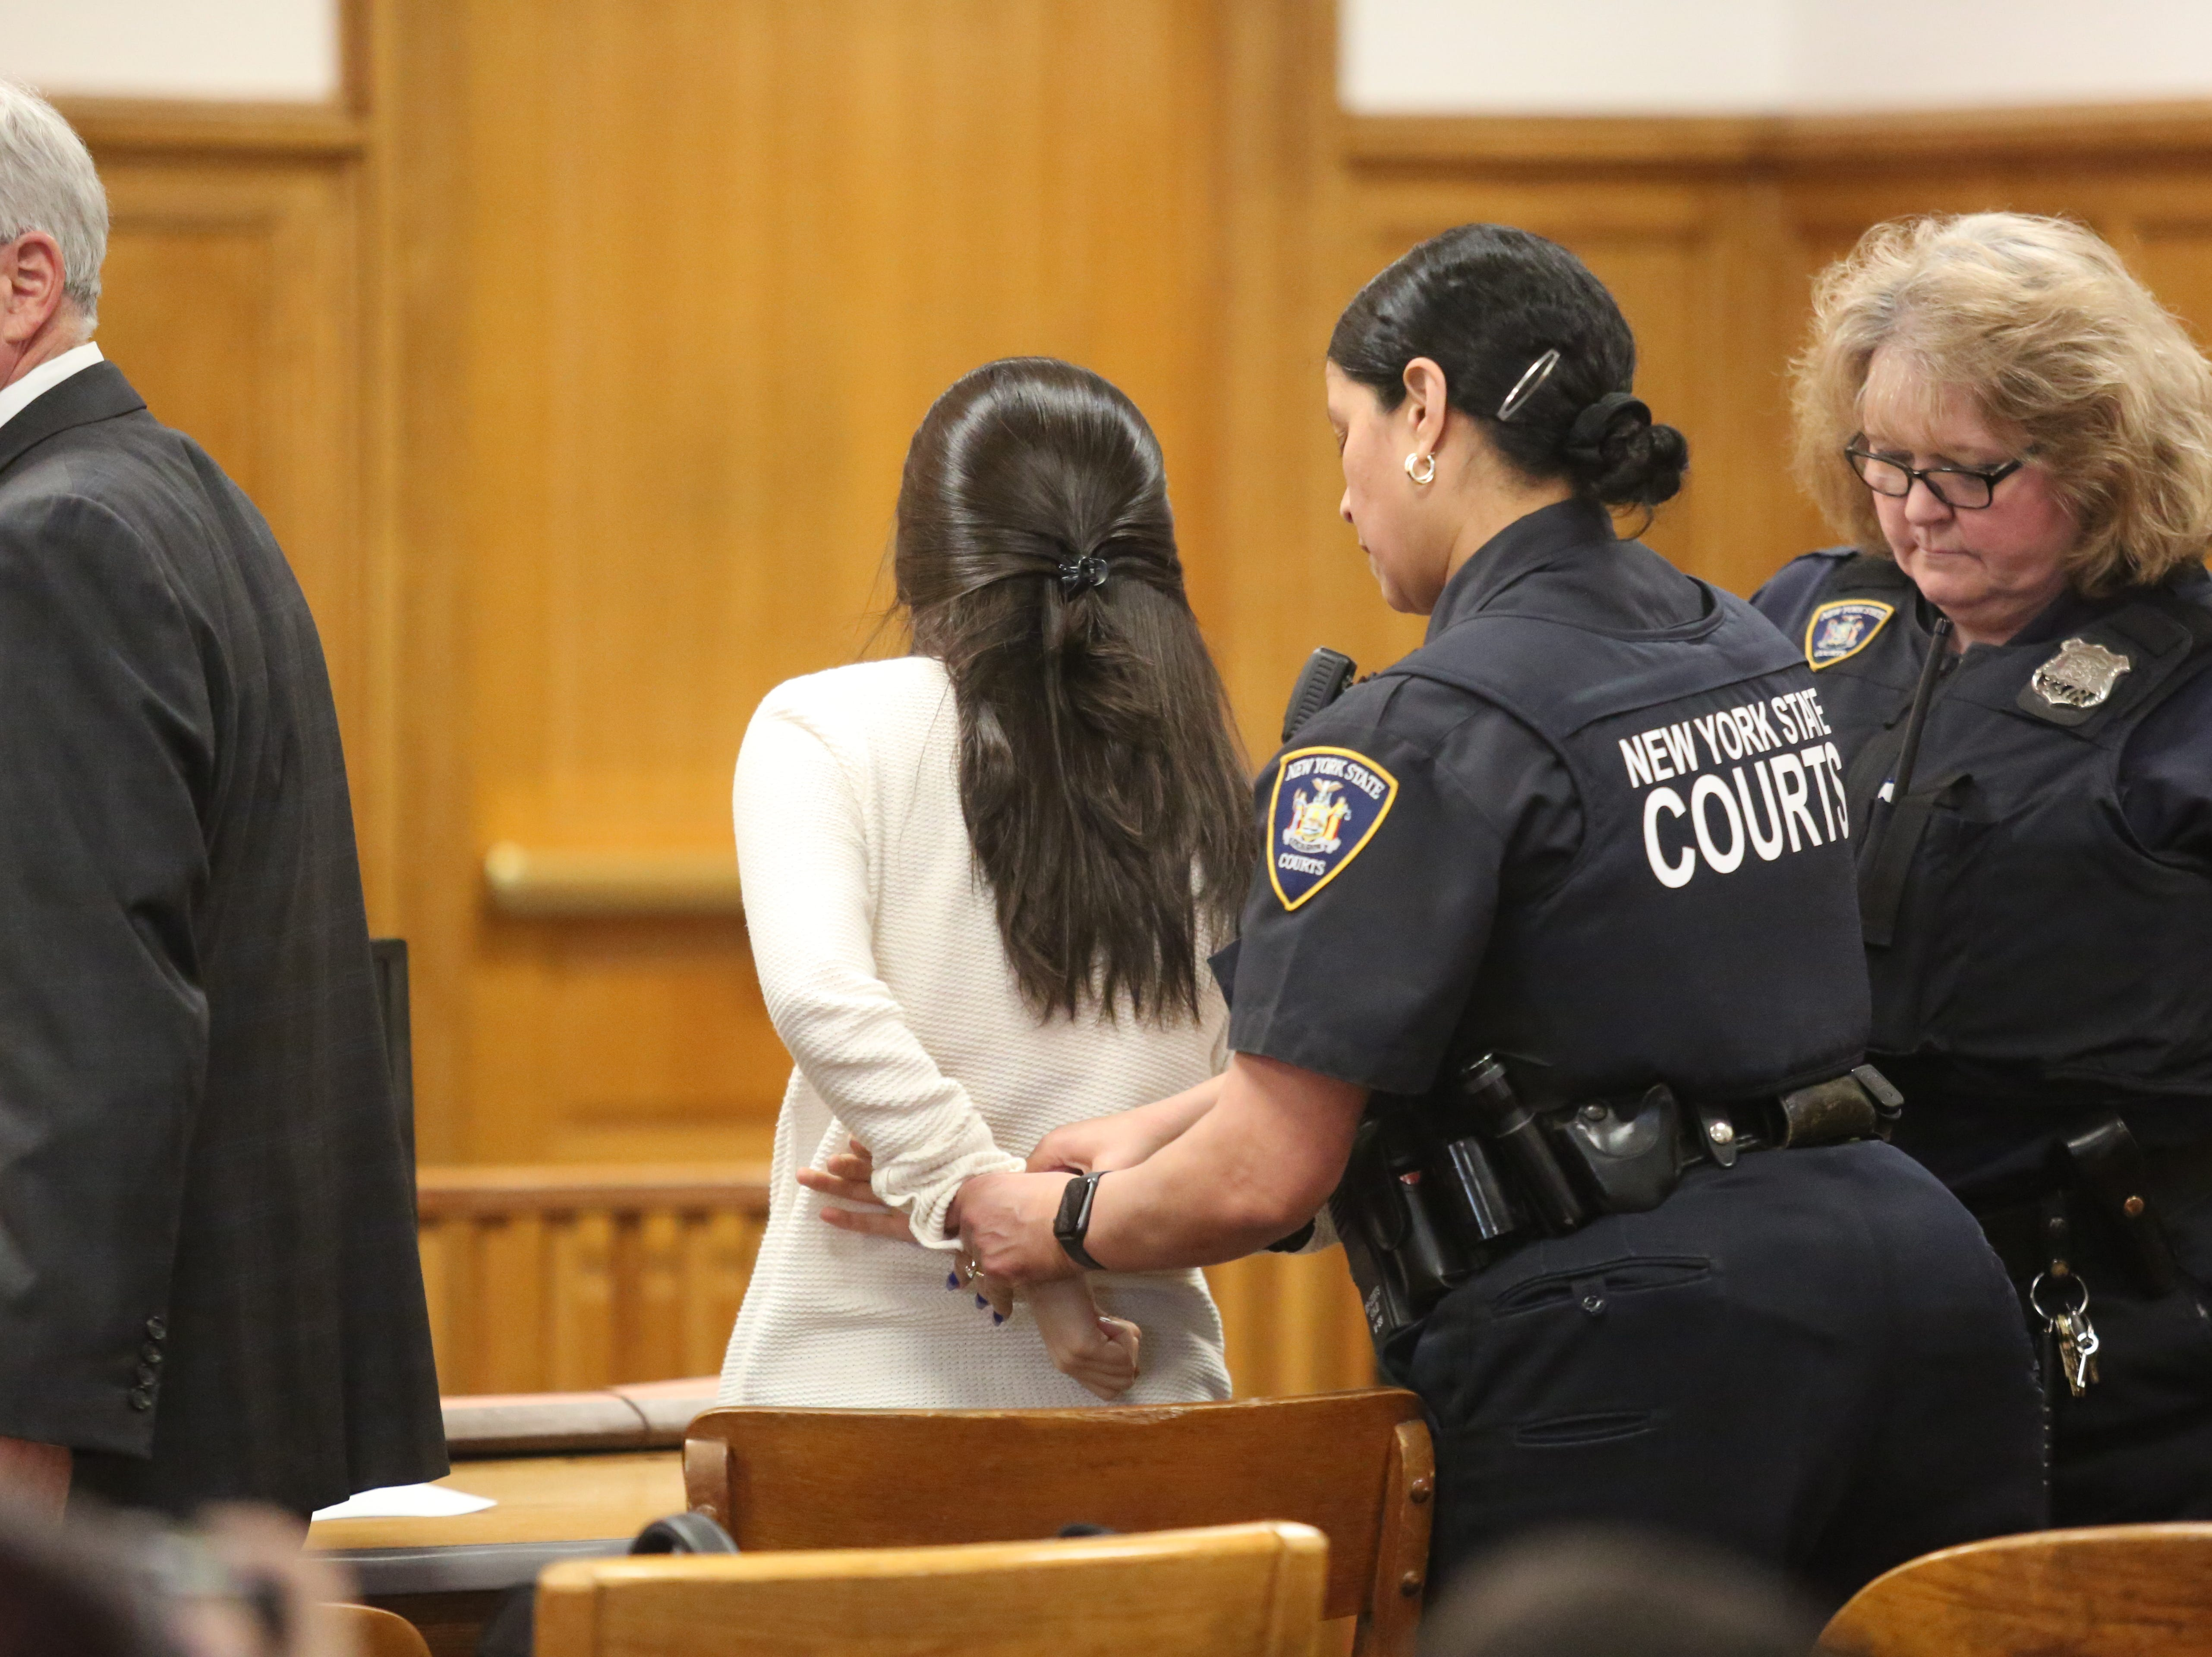 Nicole Addimando is handcuffed after she was found guilty of second-degree murder in the shooting death of Christopher Grover on April 12, 2019.